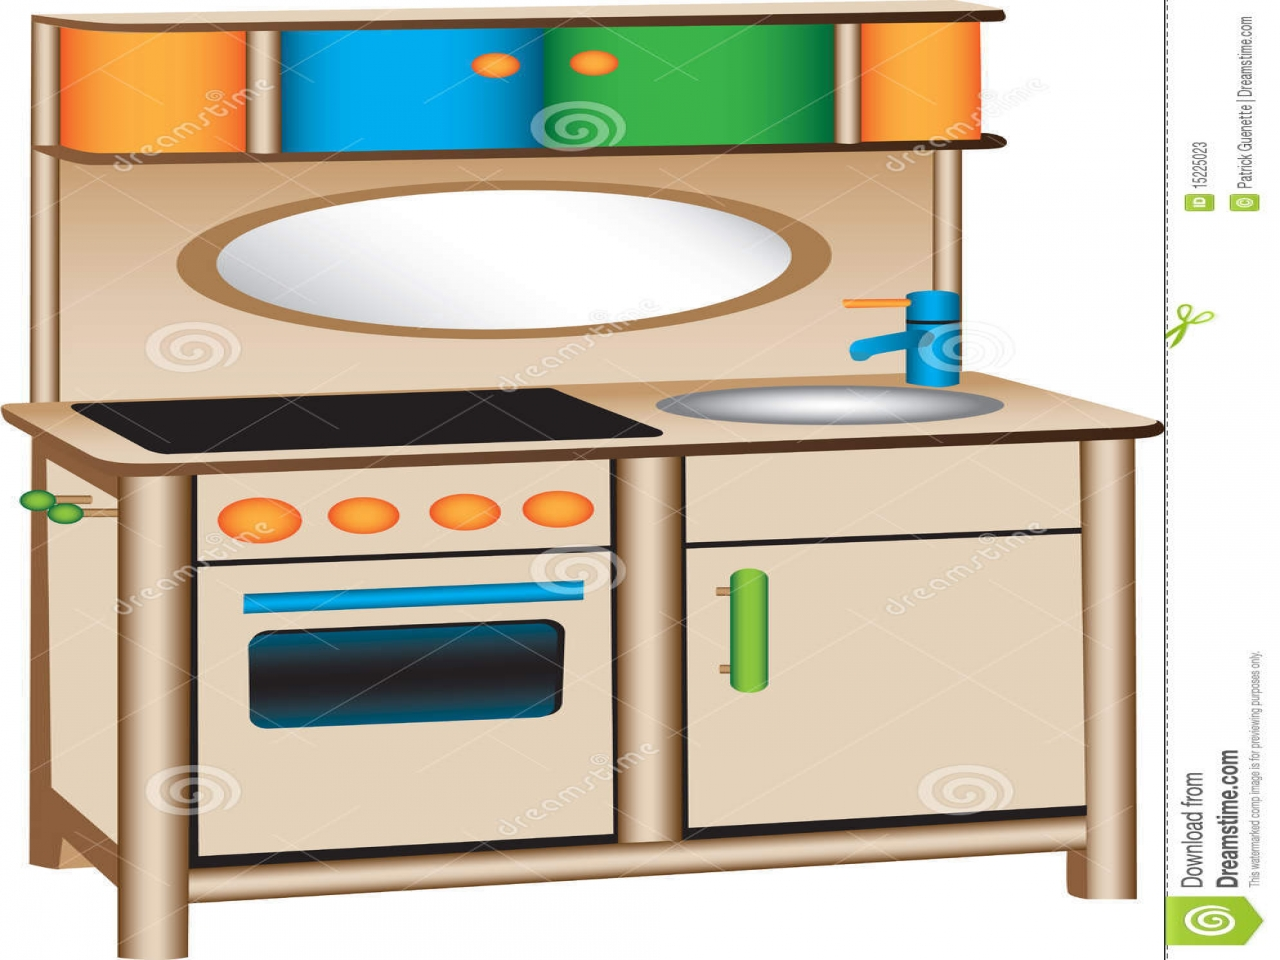 1280x960 Area Clipart Kitchen Play